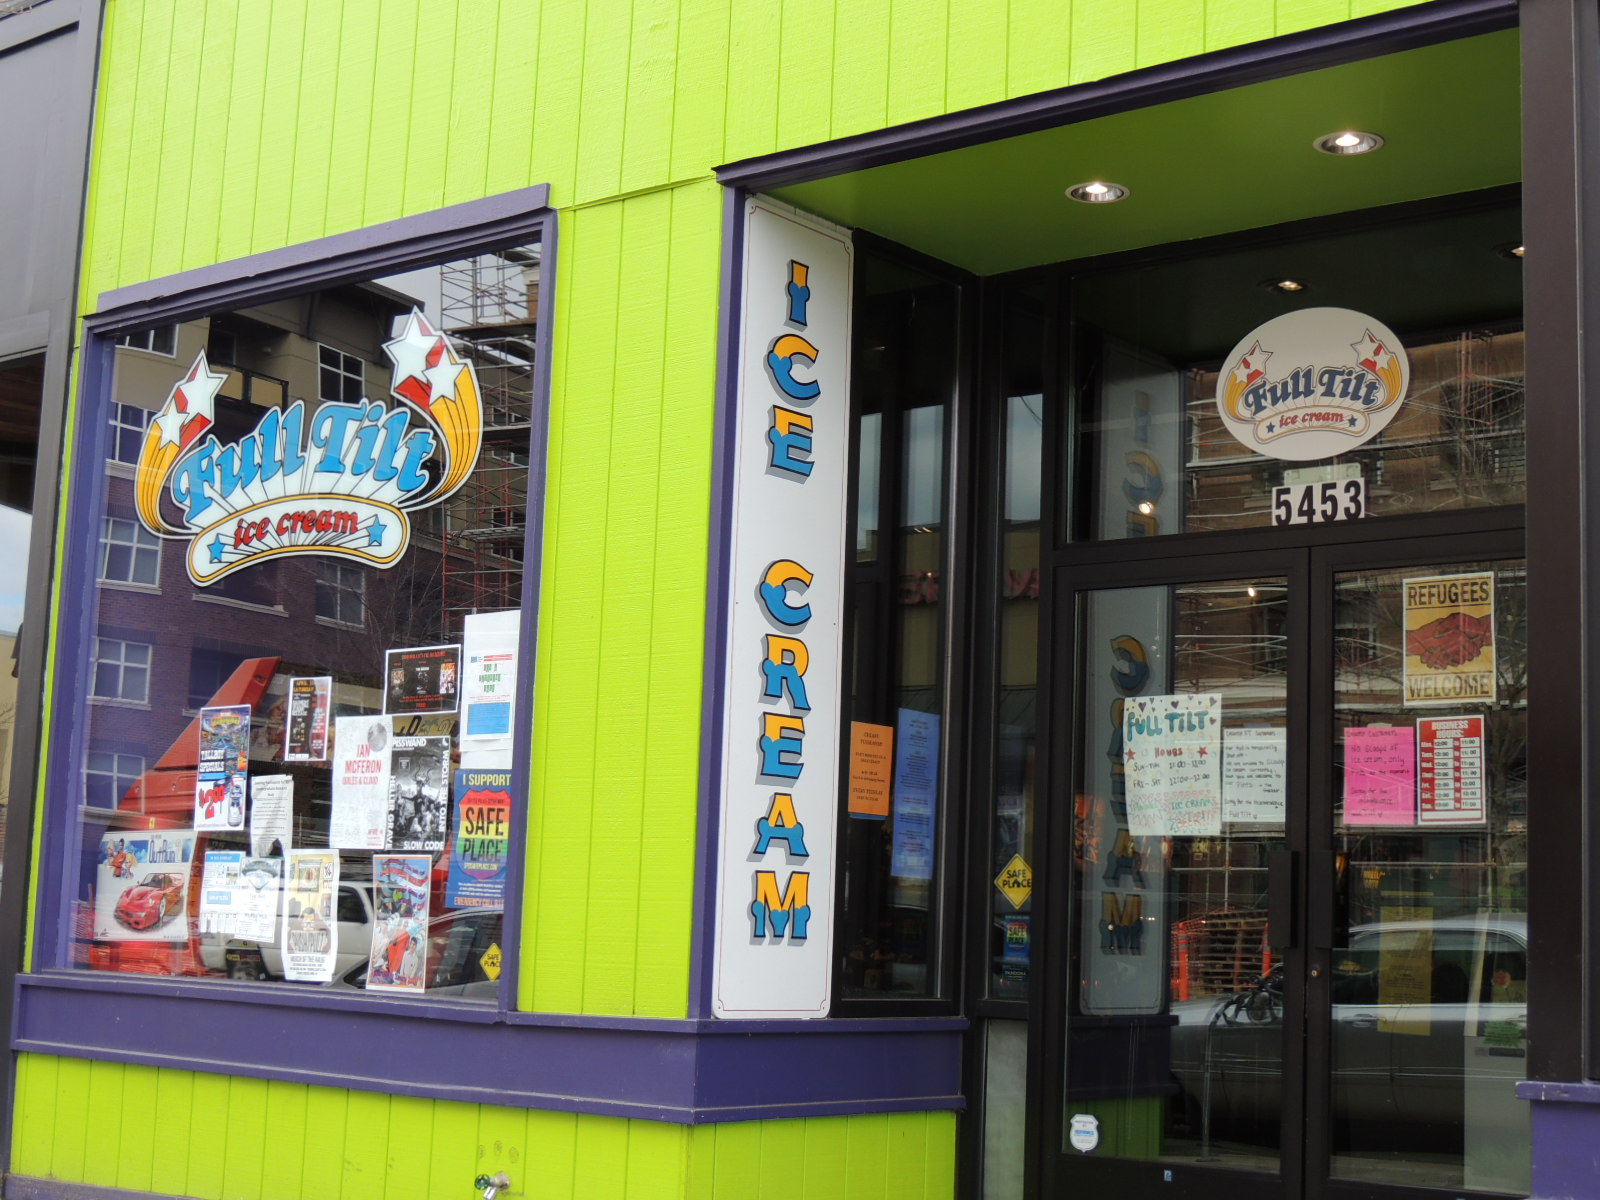 Entrance to Full Tilt Ice Cream (and Pin Ball) on Leary Street.